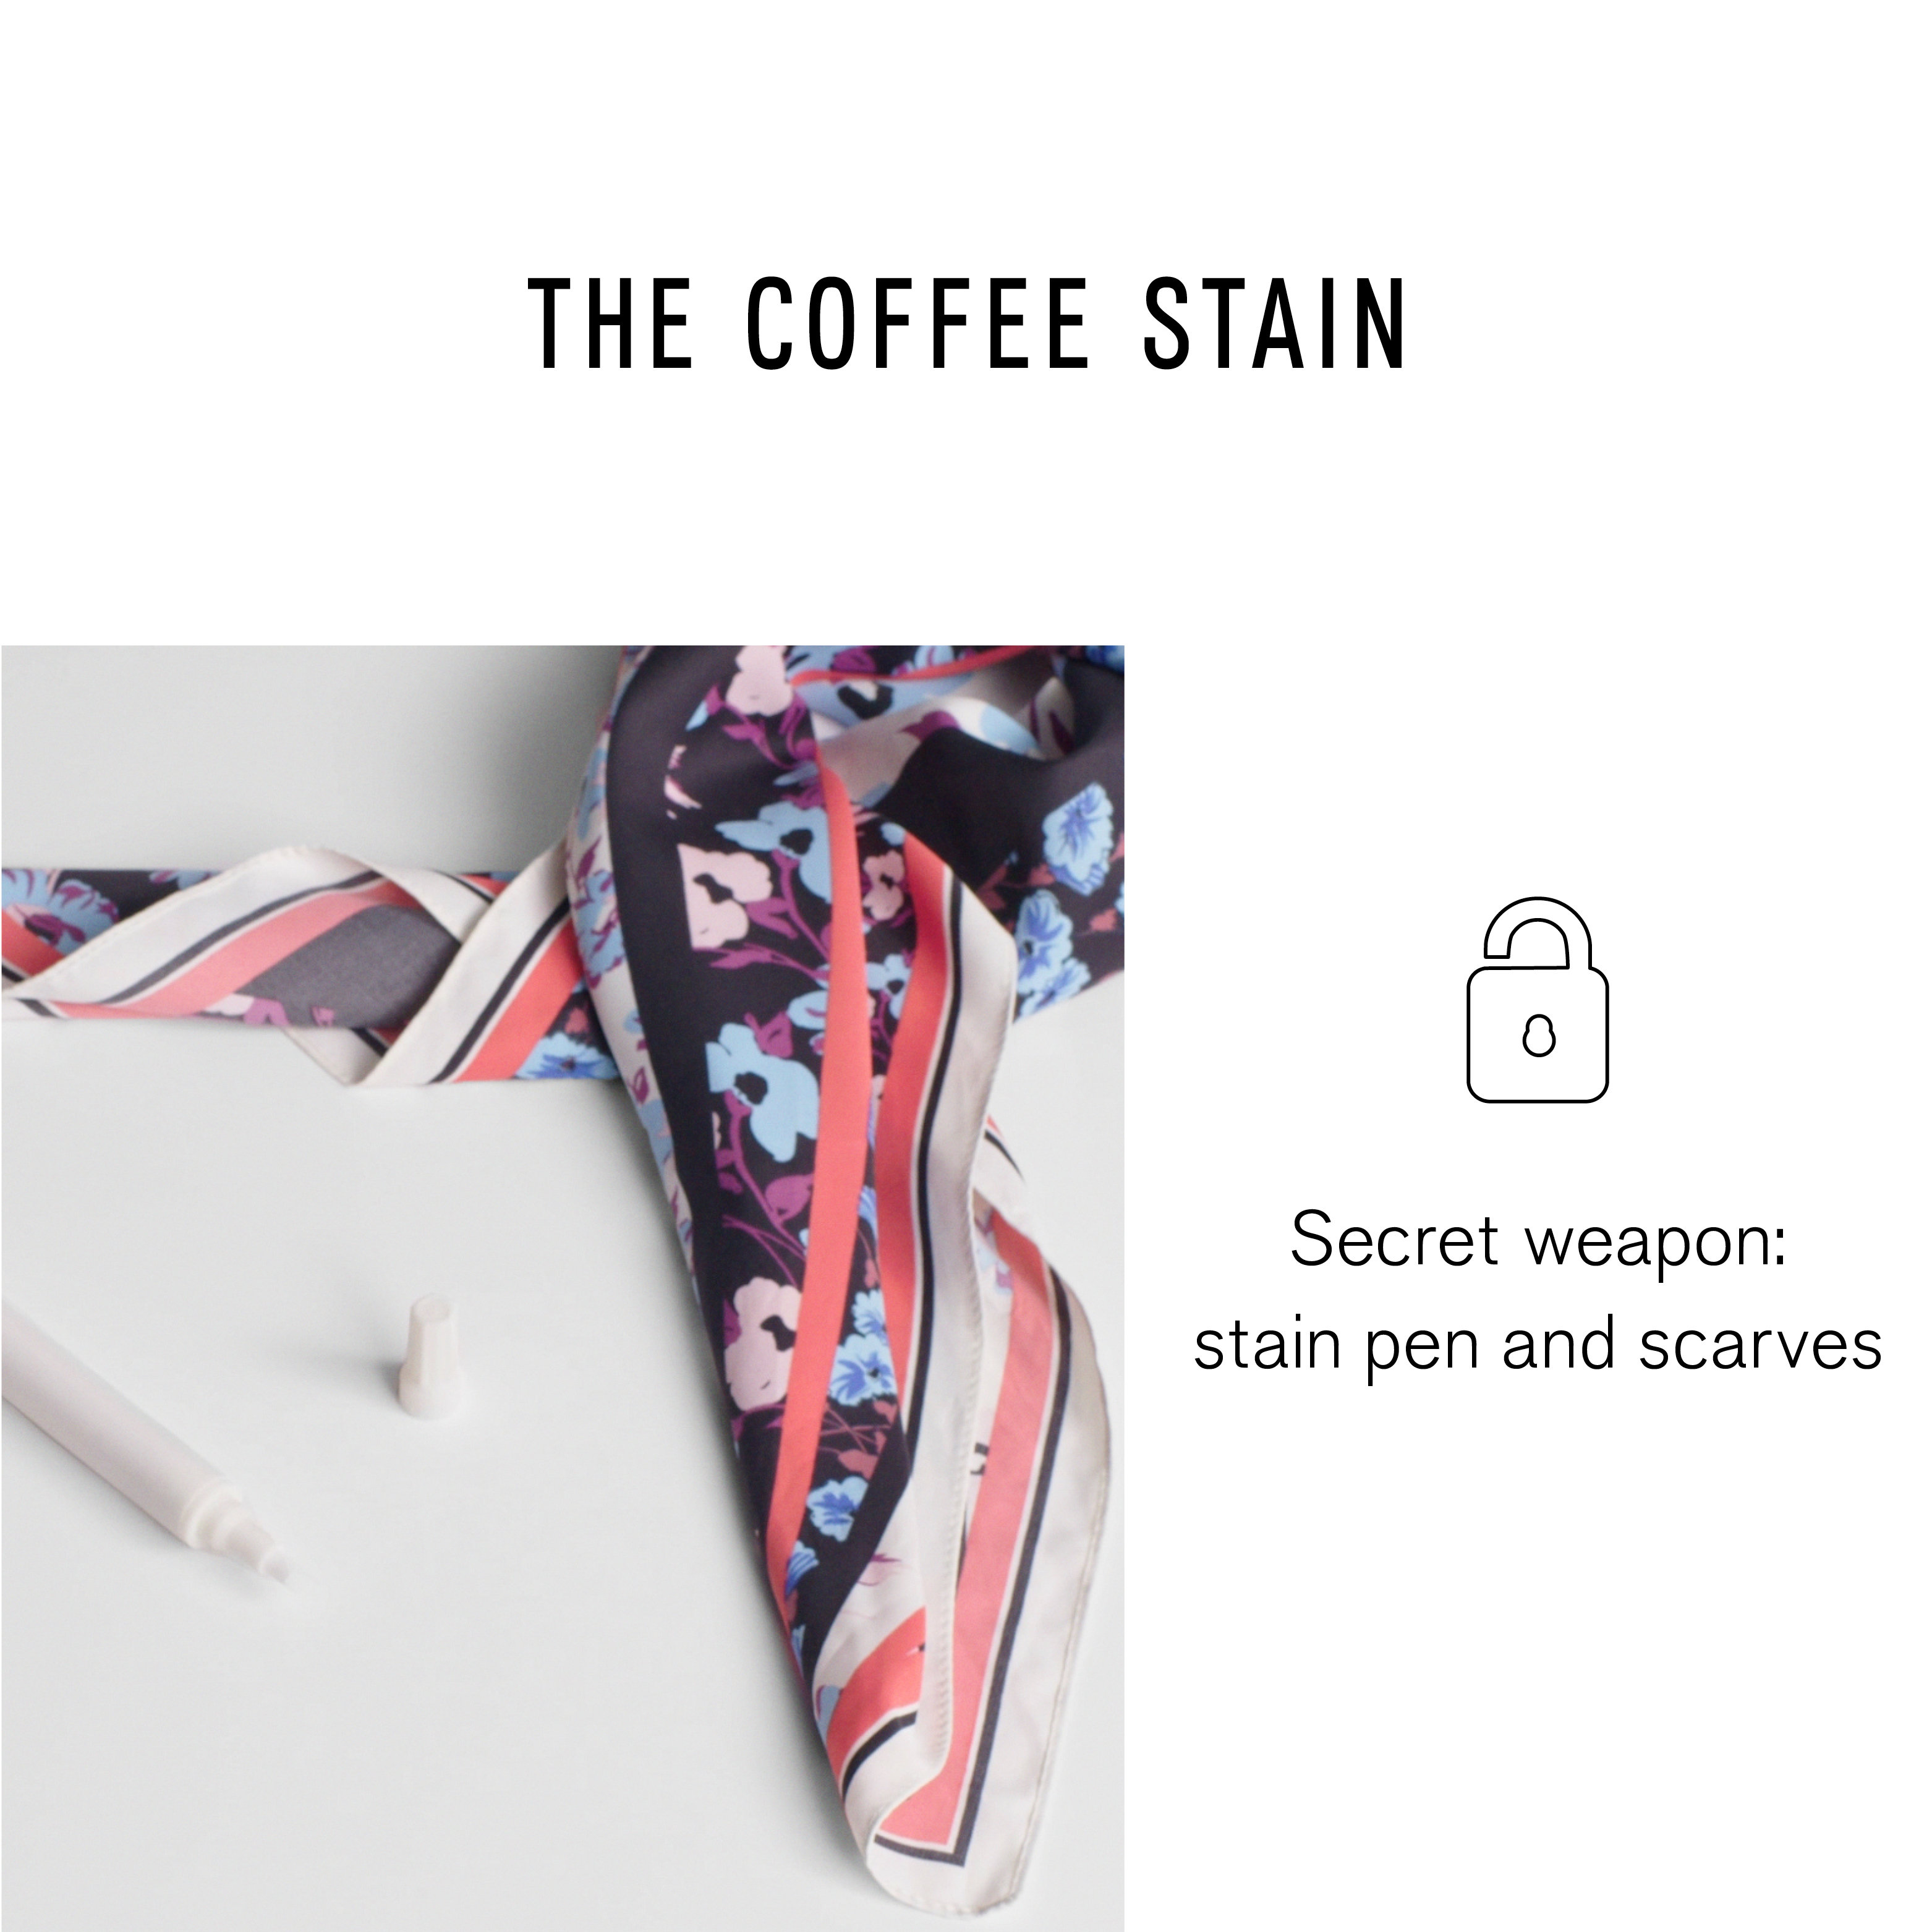 the-coffee-stain-secret-weapon-stain-pen-and-scarves